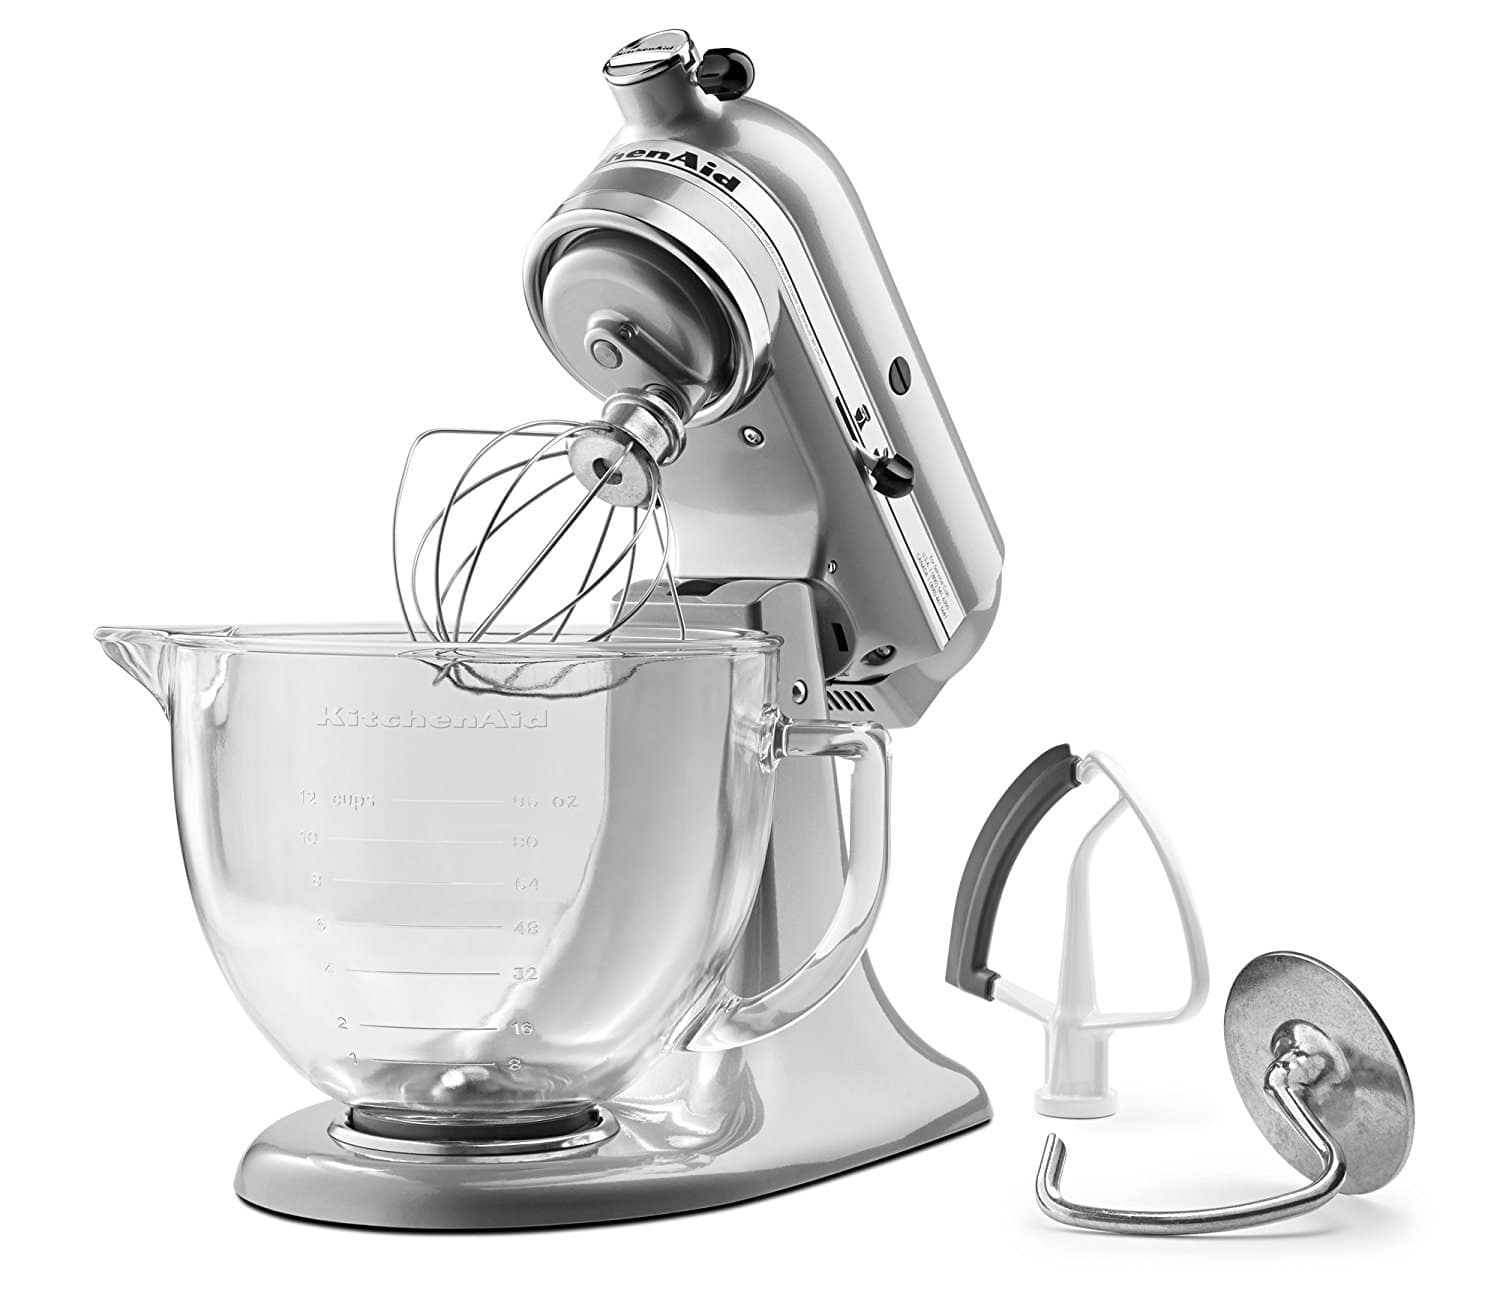 KitchenAid 5-Qt. Artisan Design Series with Glass Bowl in Frosted Pearl White